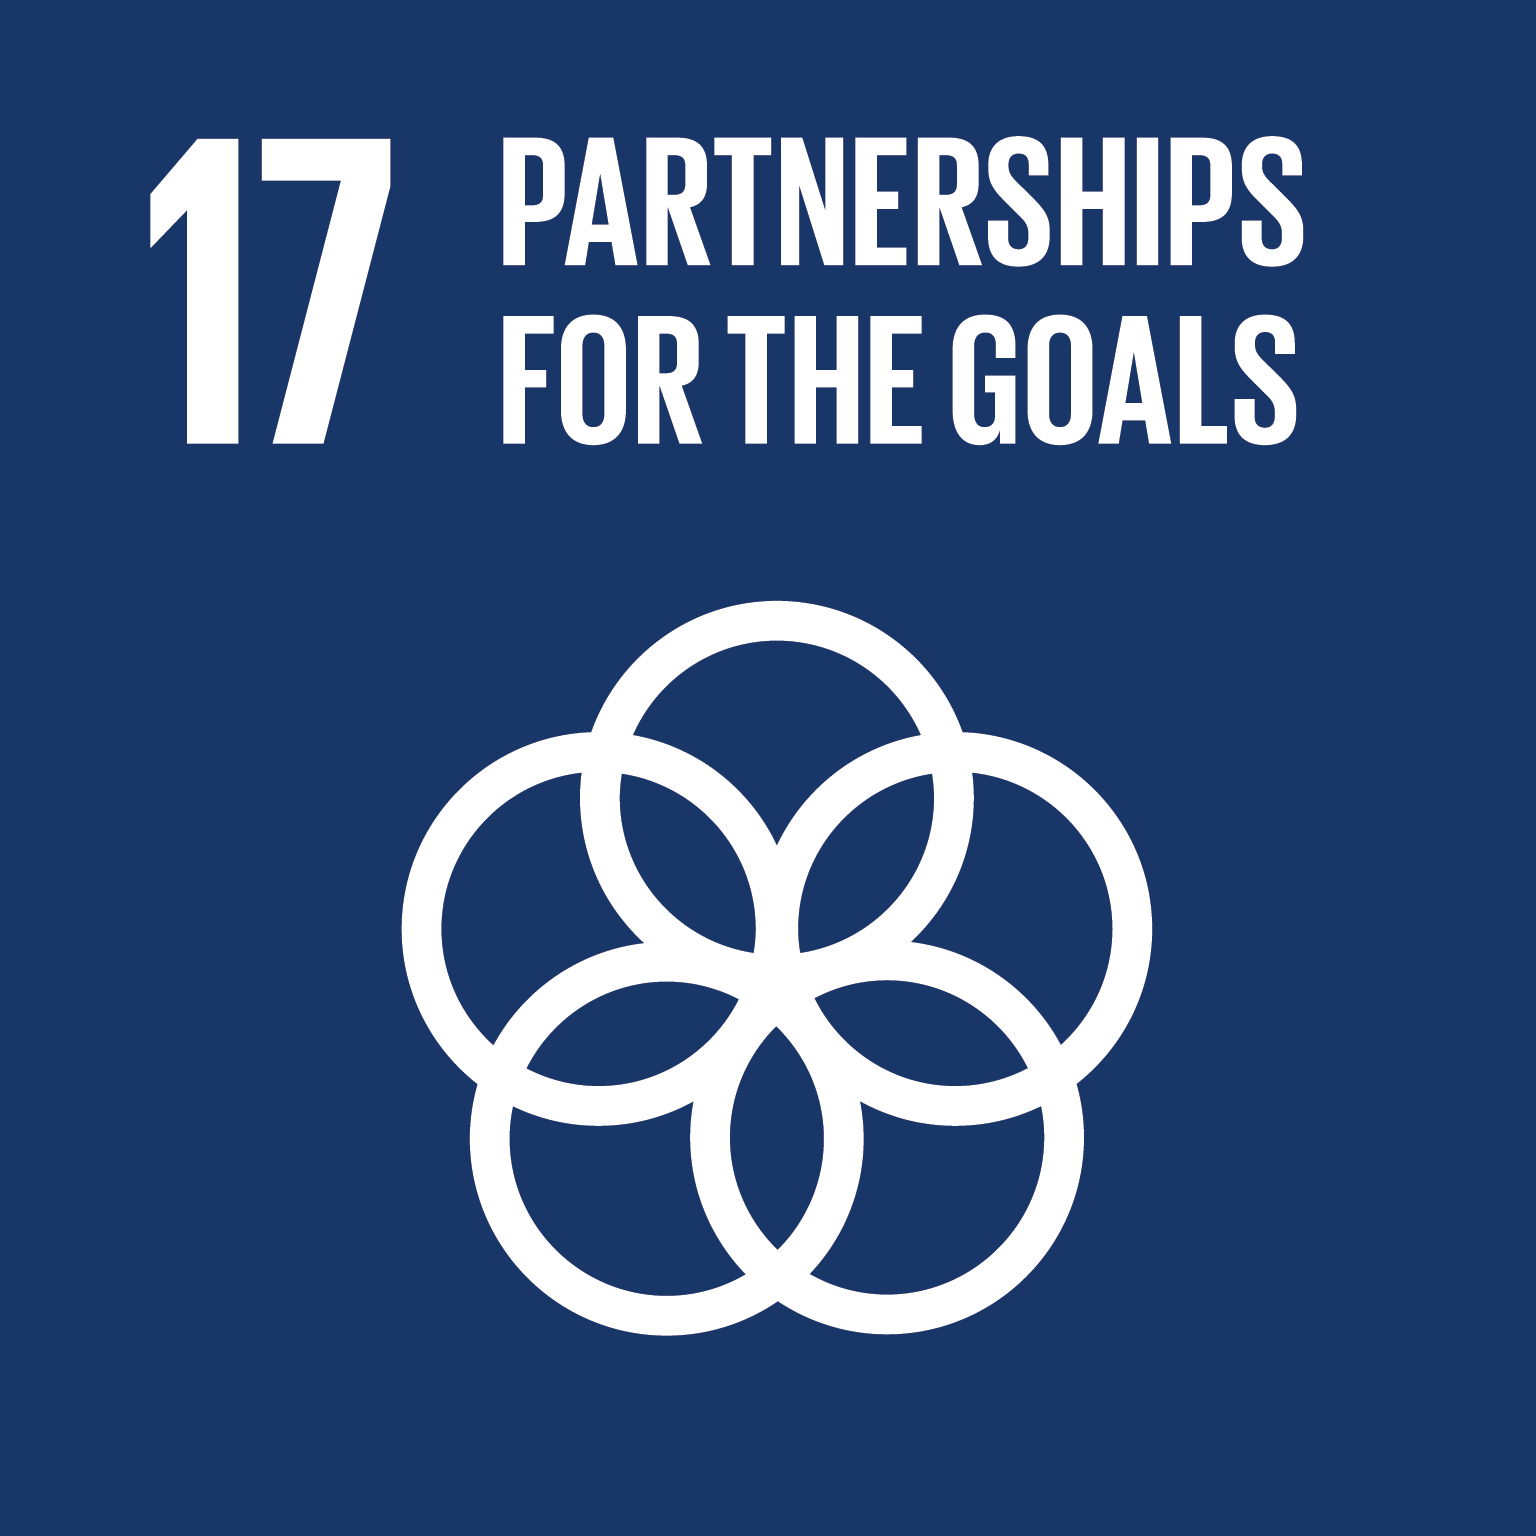 - We collaborate with multiple partners to ensure programmes achieve the goal of eliminating parasitic worm infections. Find out more about who we work with.